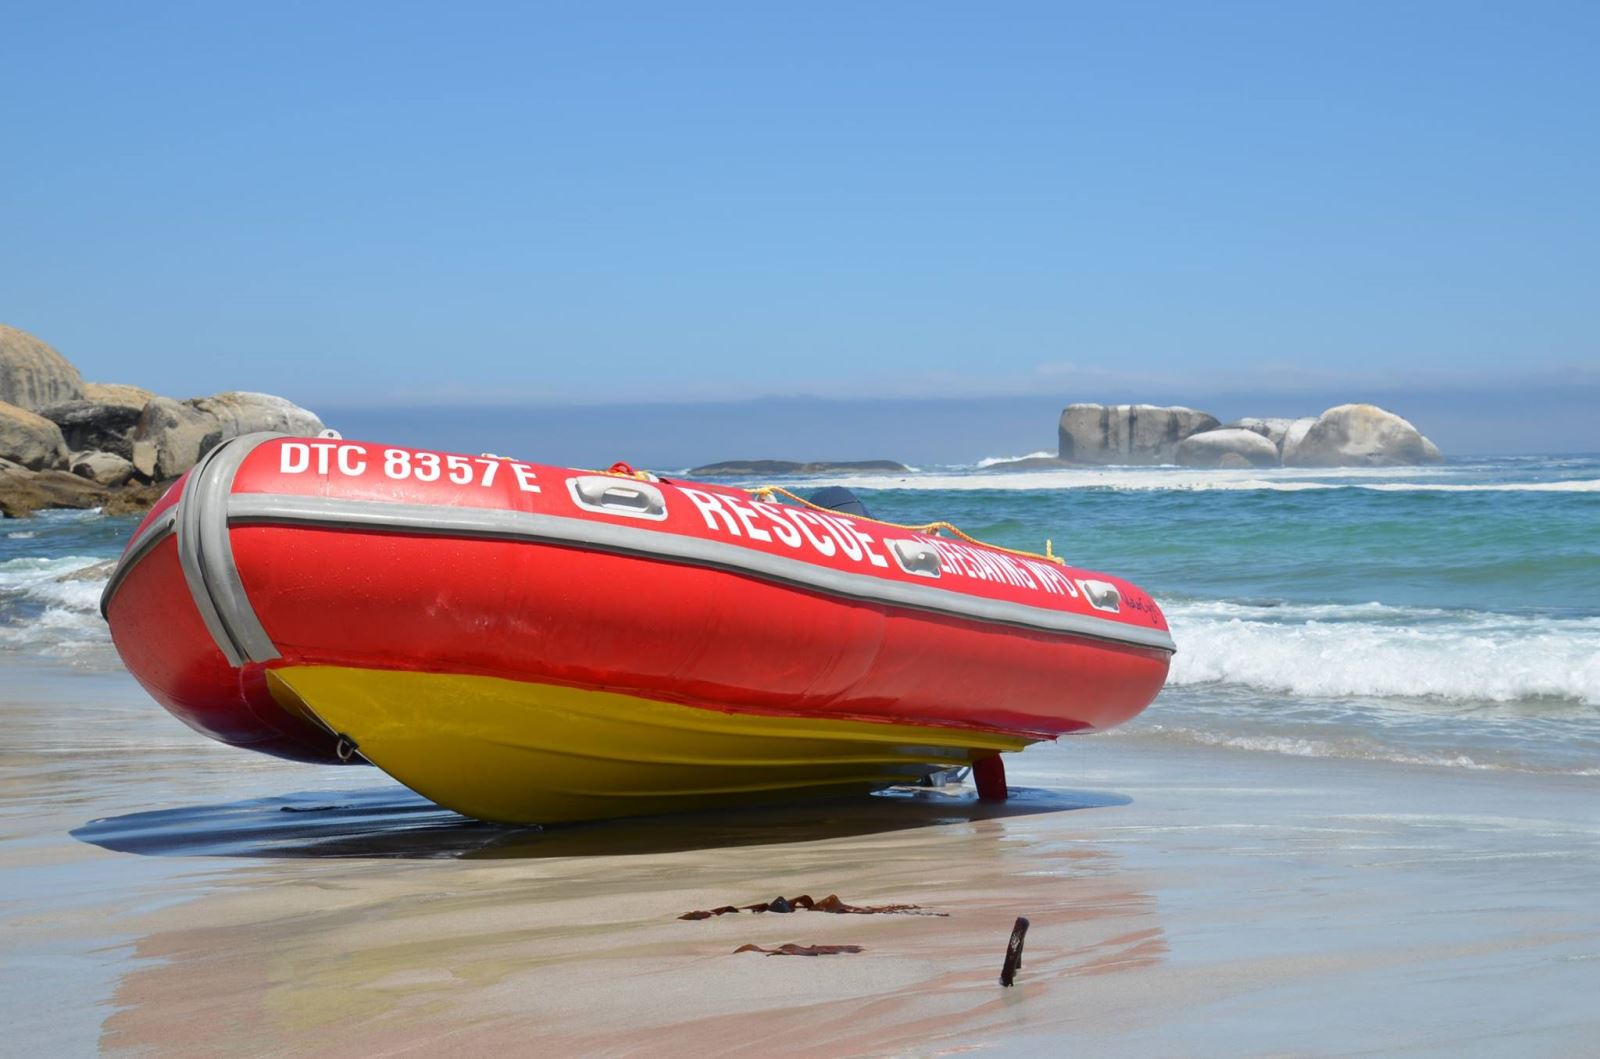 Near drowning incident on the North Beach in Durban - Arrive Alive